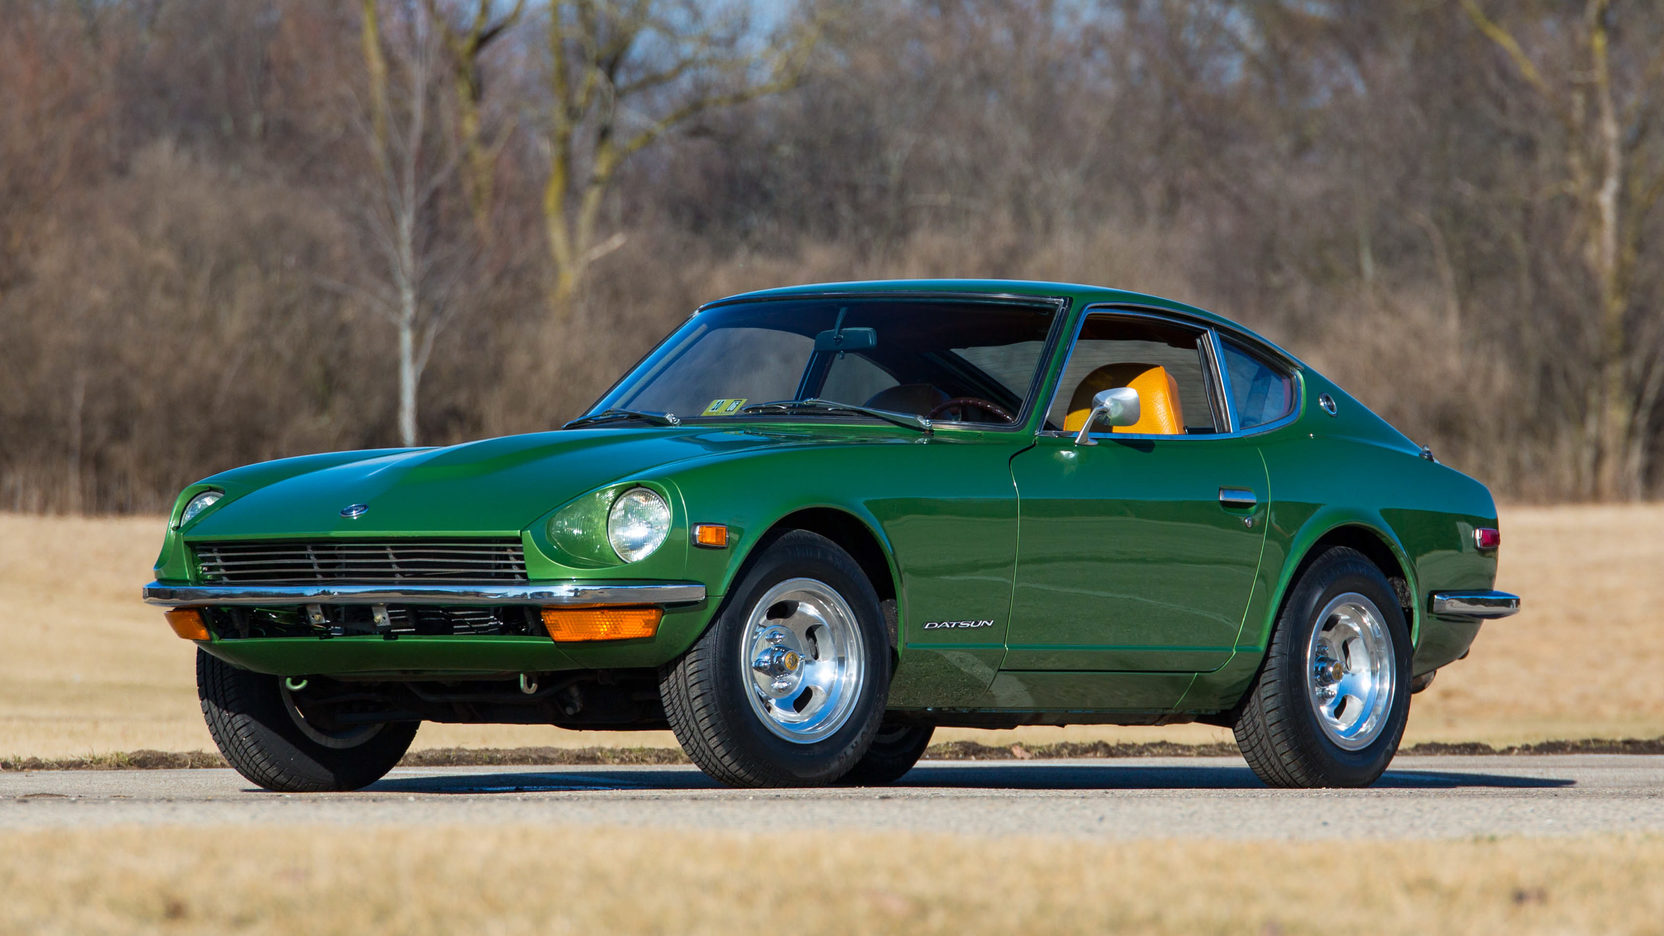 Datsun 240Z values show it's getting the appreciation it deserves thumbnail